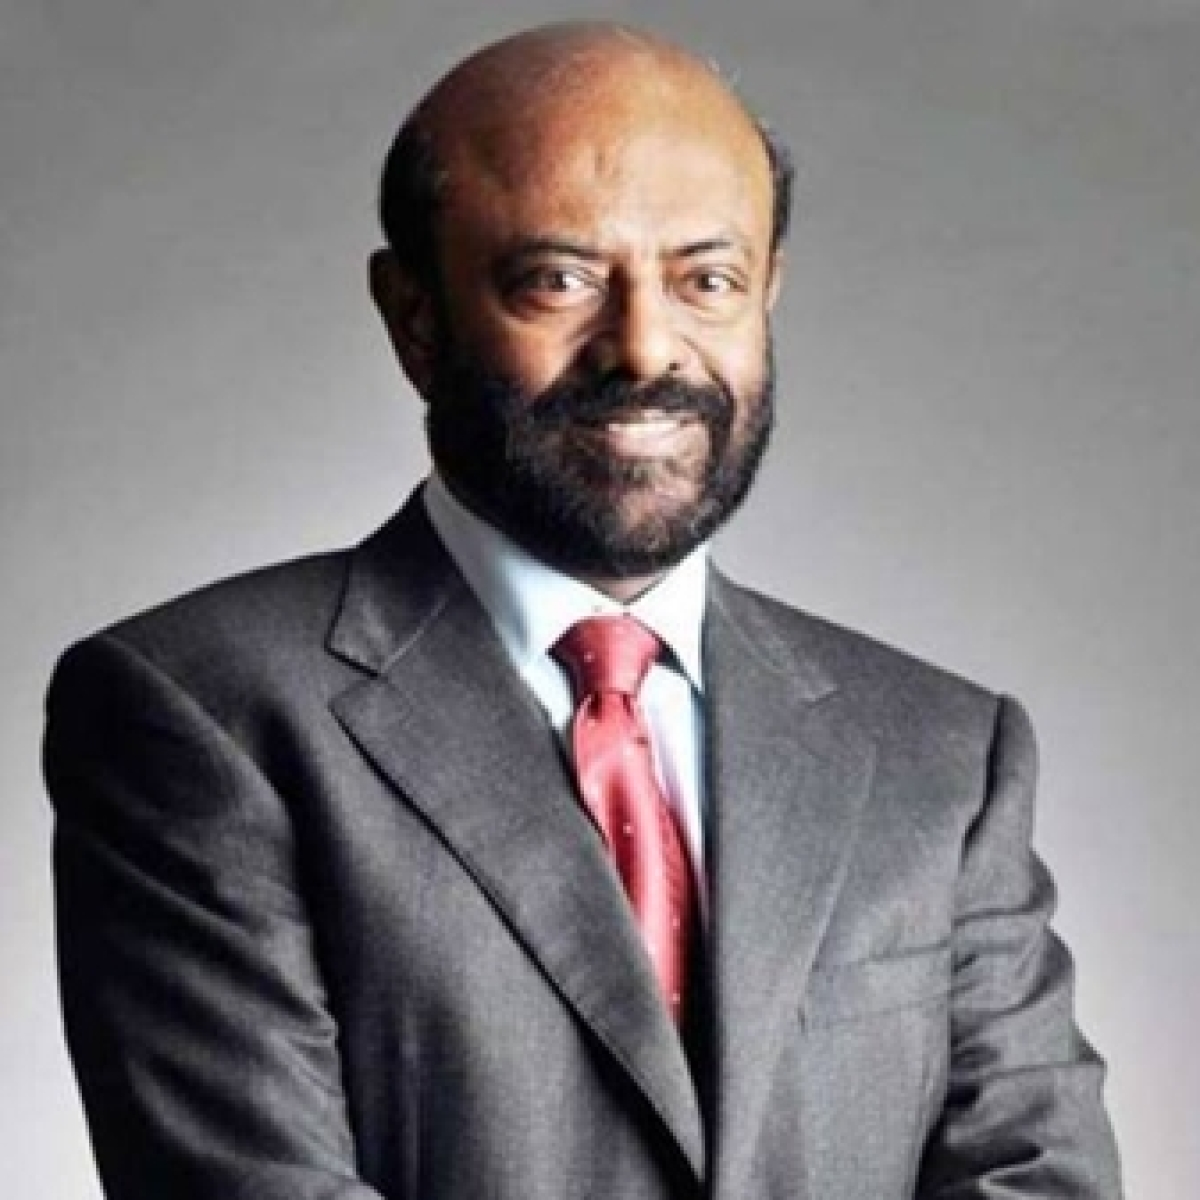 All stakeholders should help overcome nation's problems: HCL chairman Shiv Nadar